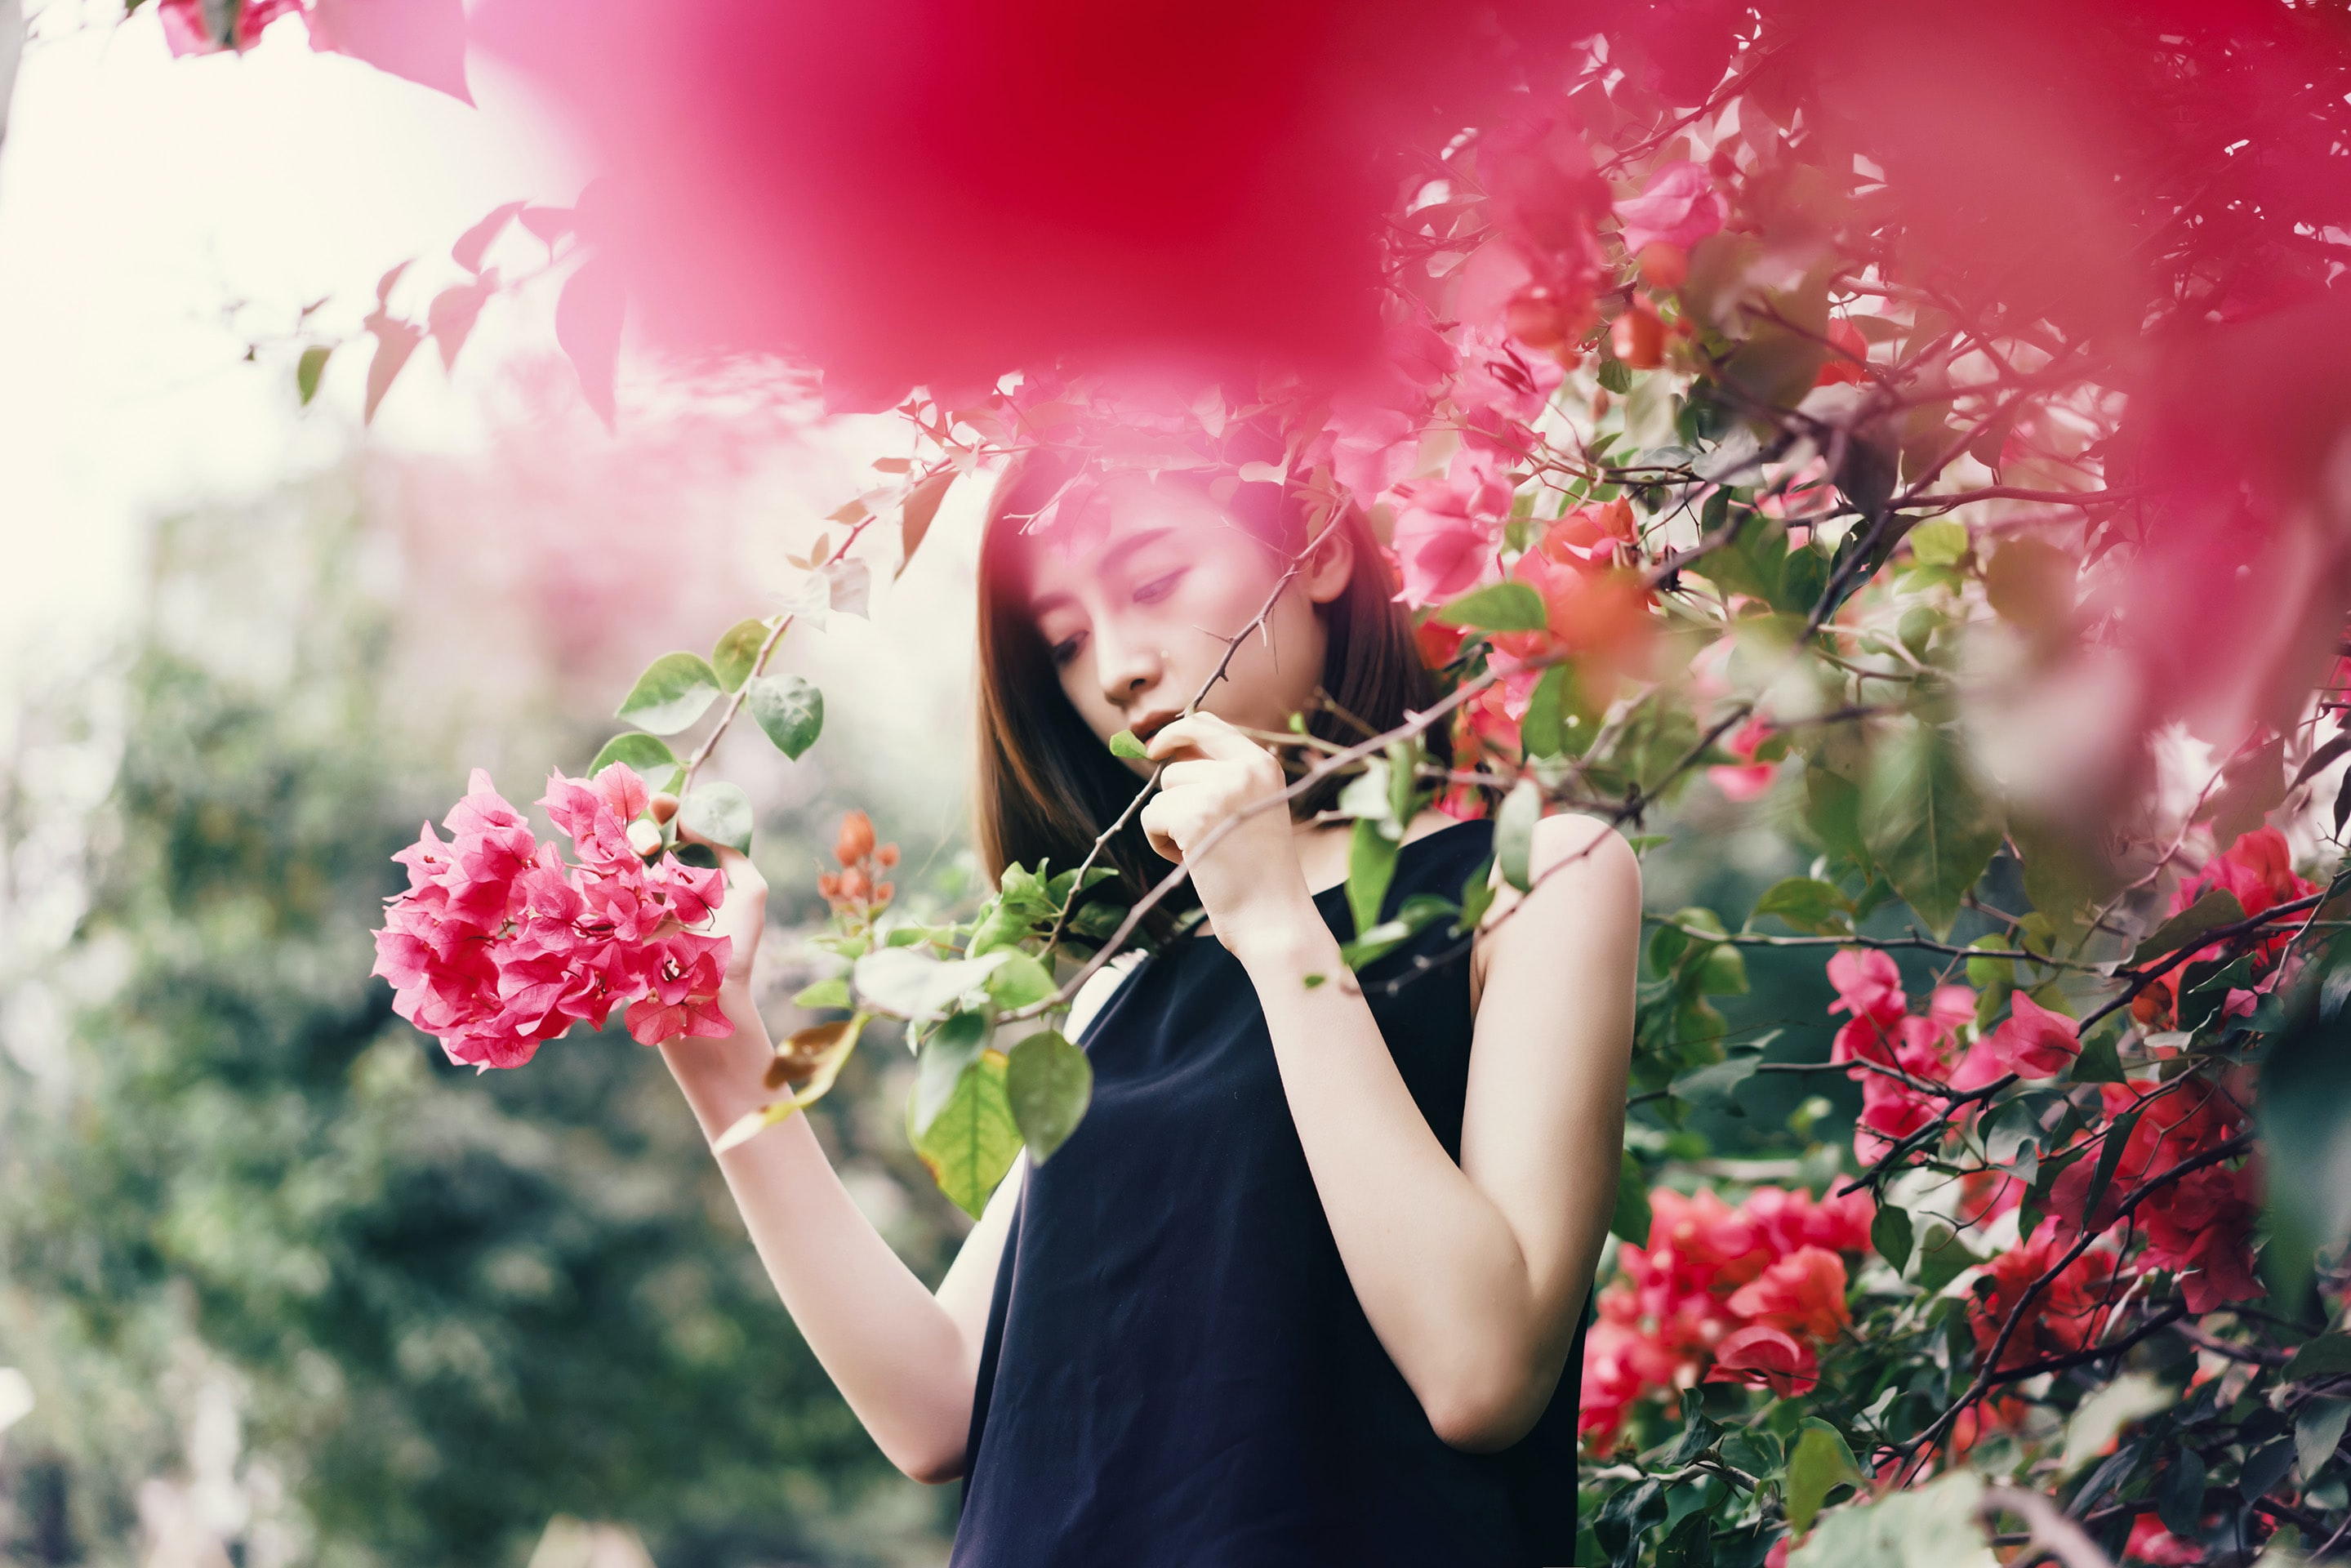 woman in black sleeveless top holding branch of plants with red flowers